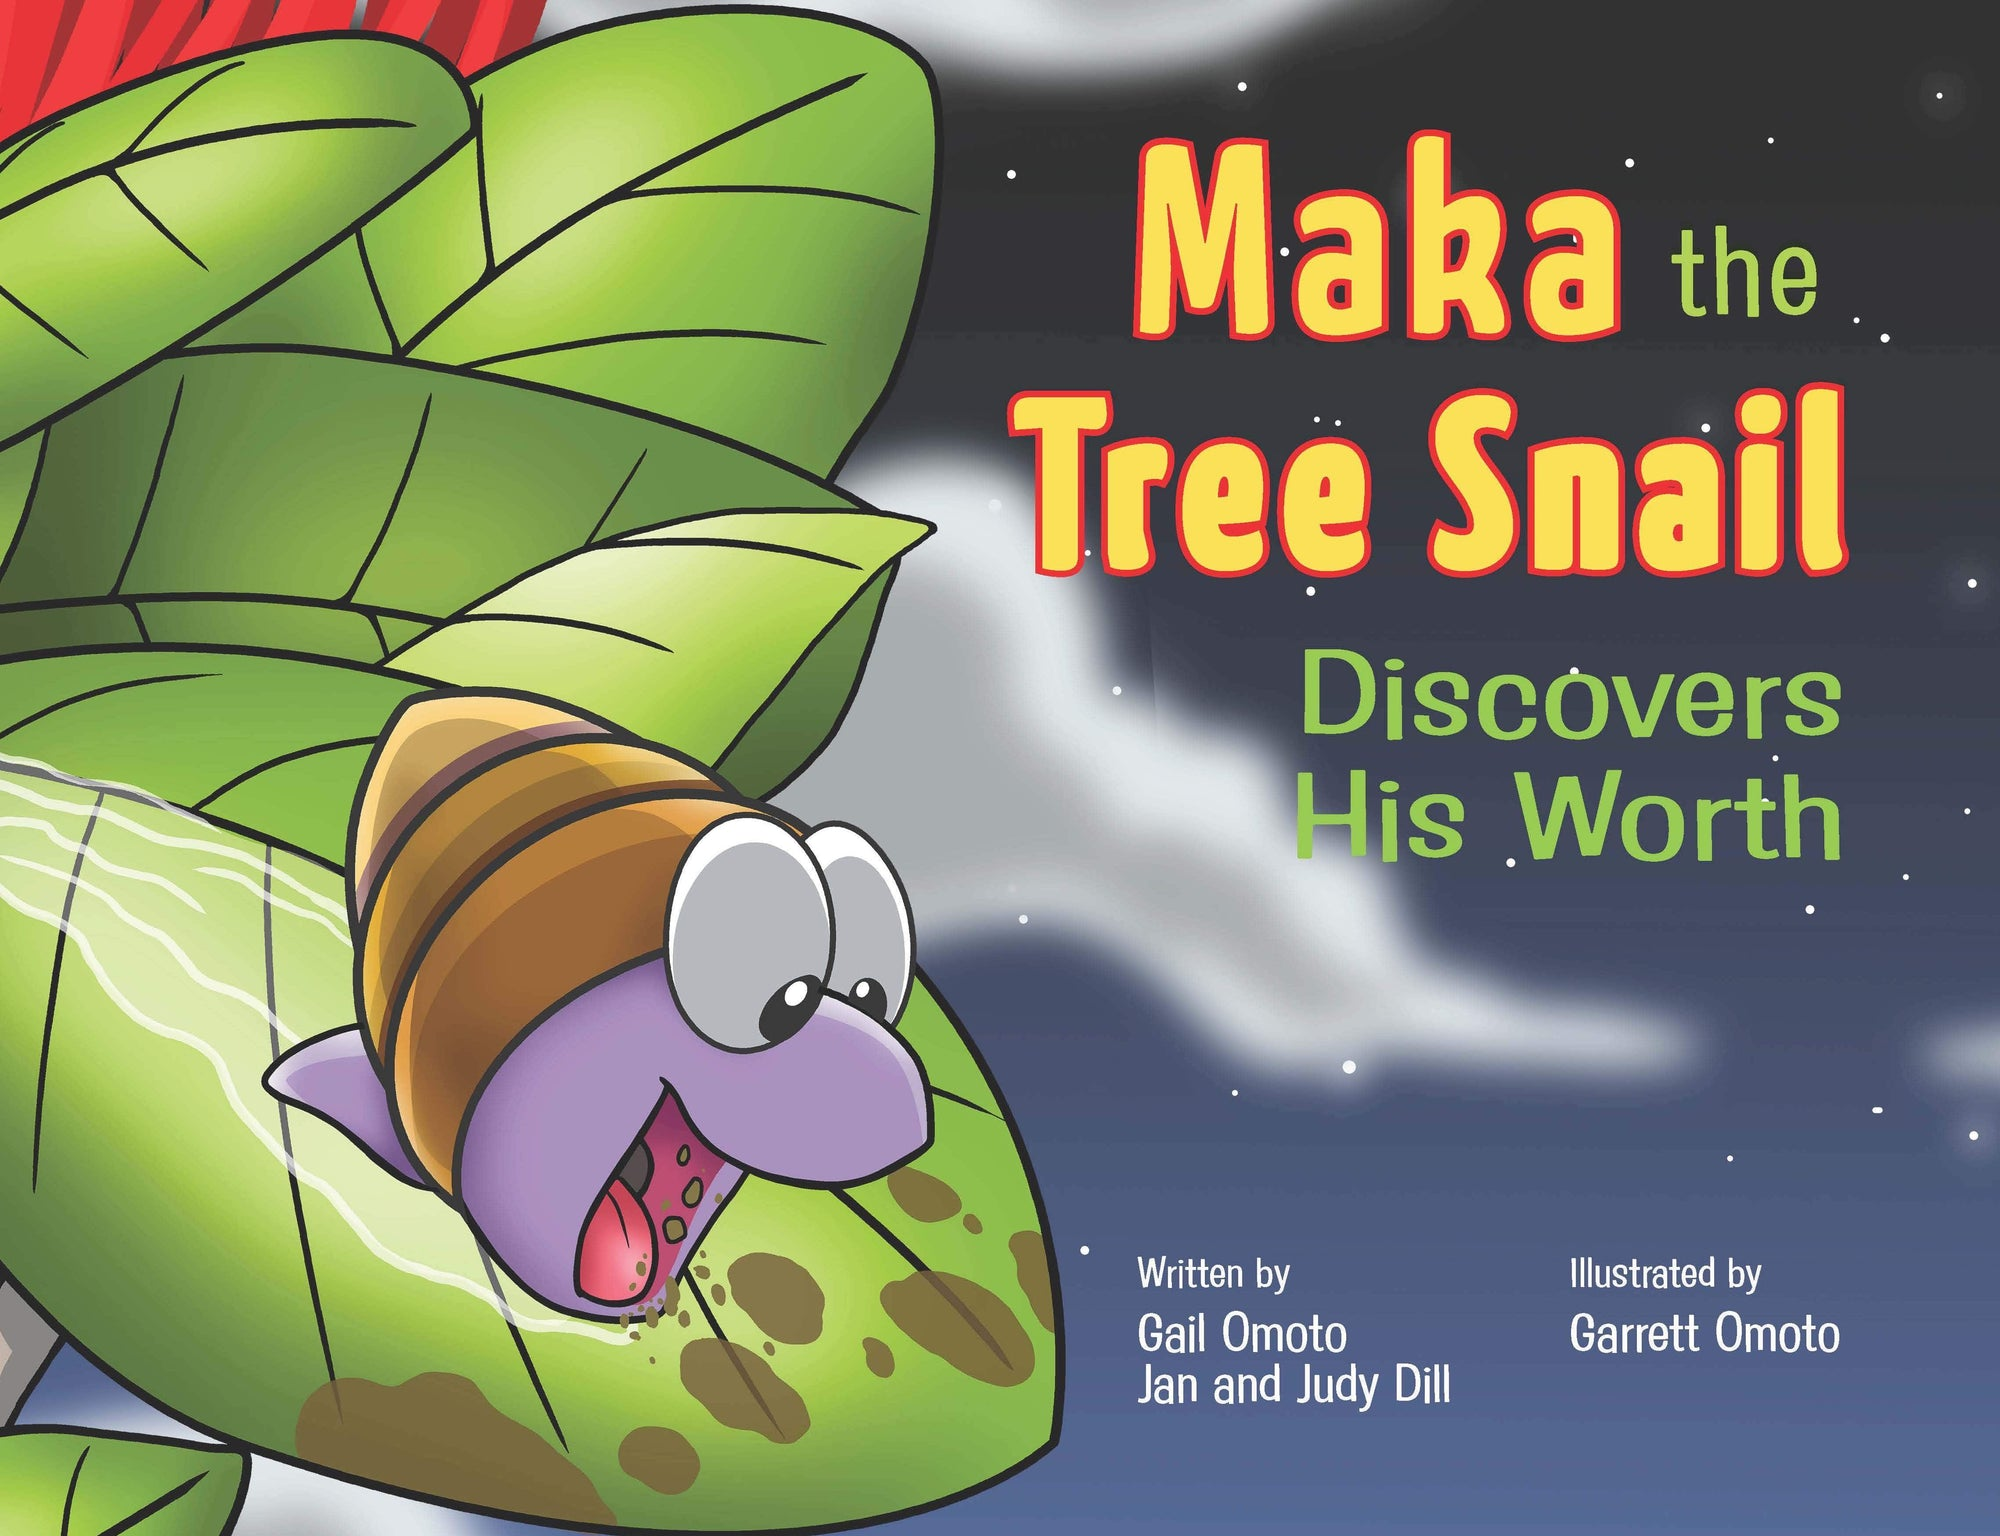 Maka the Tree Snail Discovers His Worth